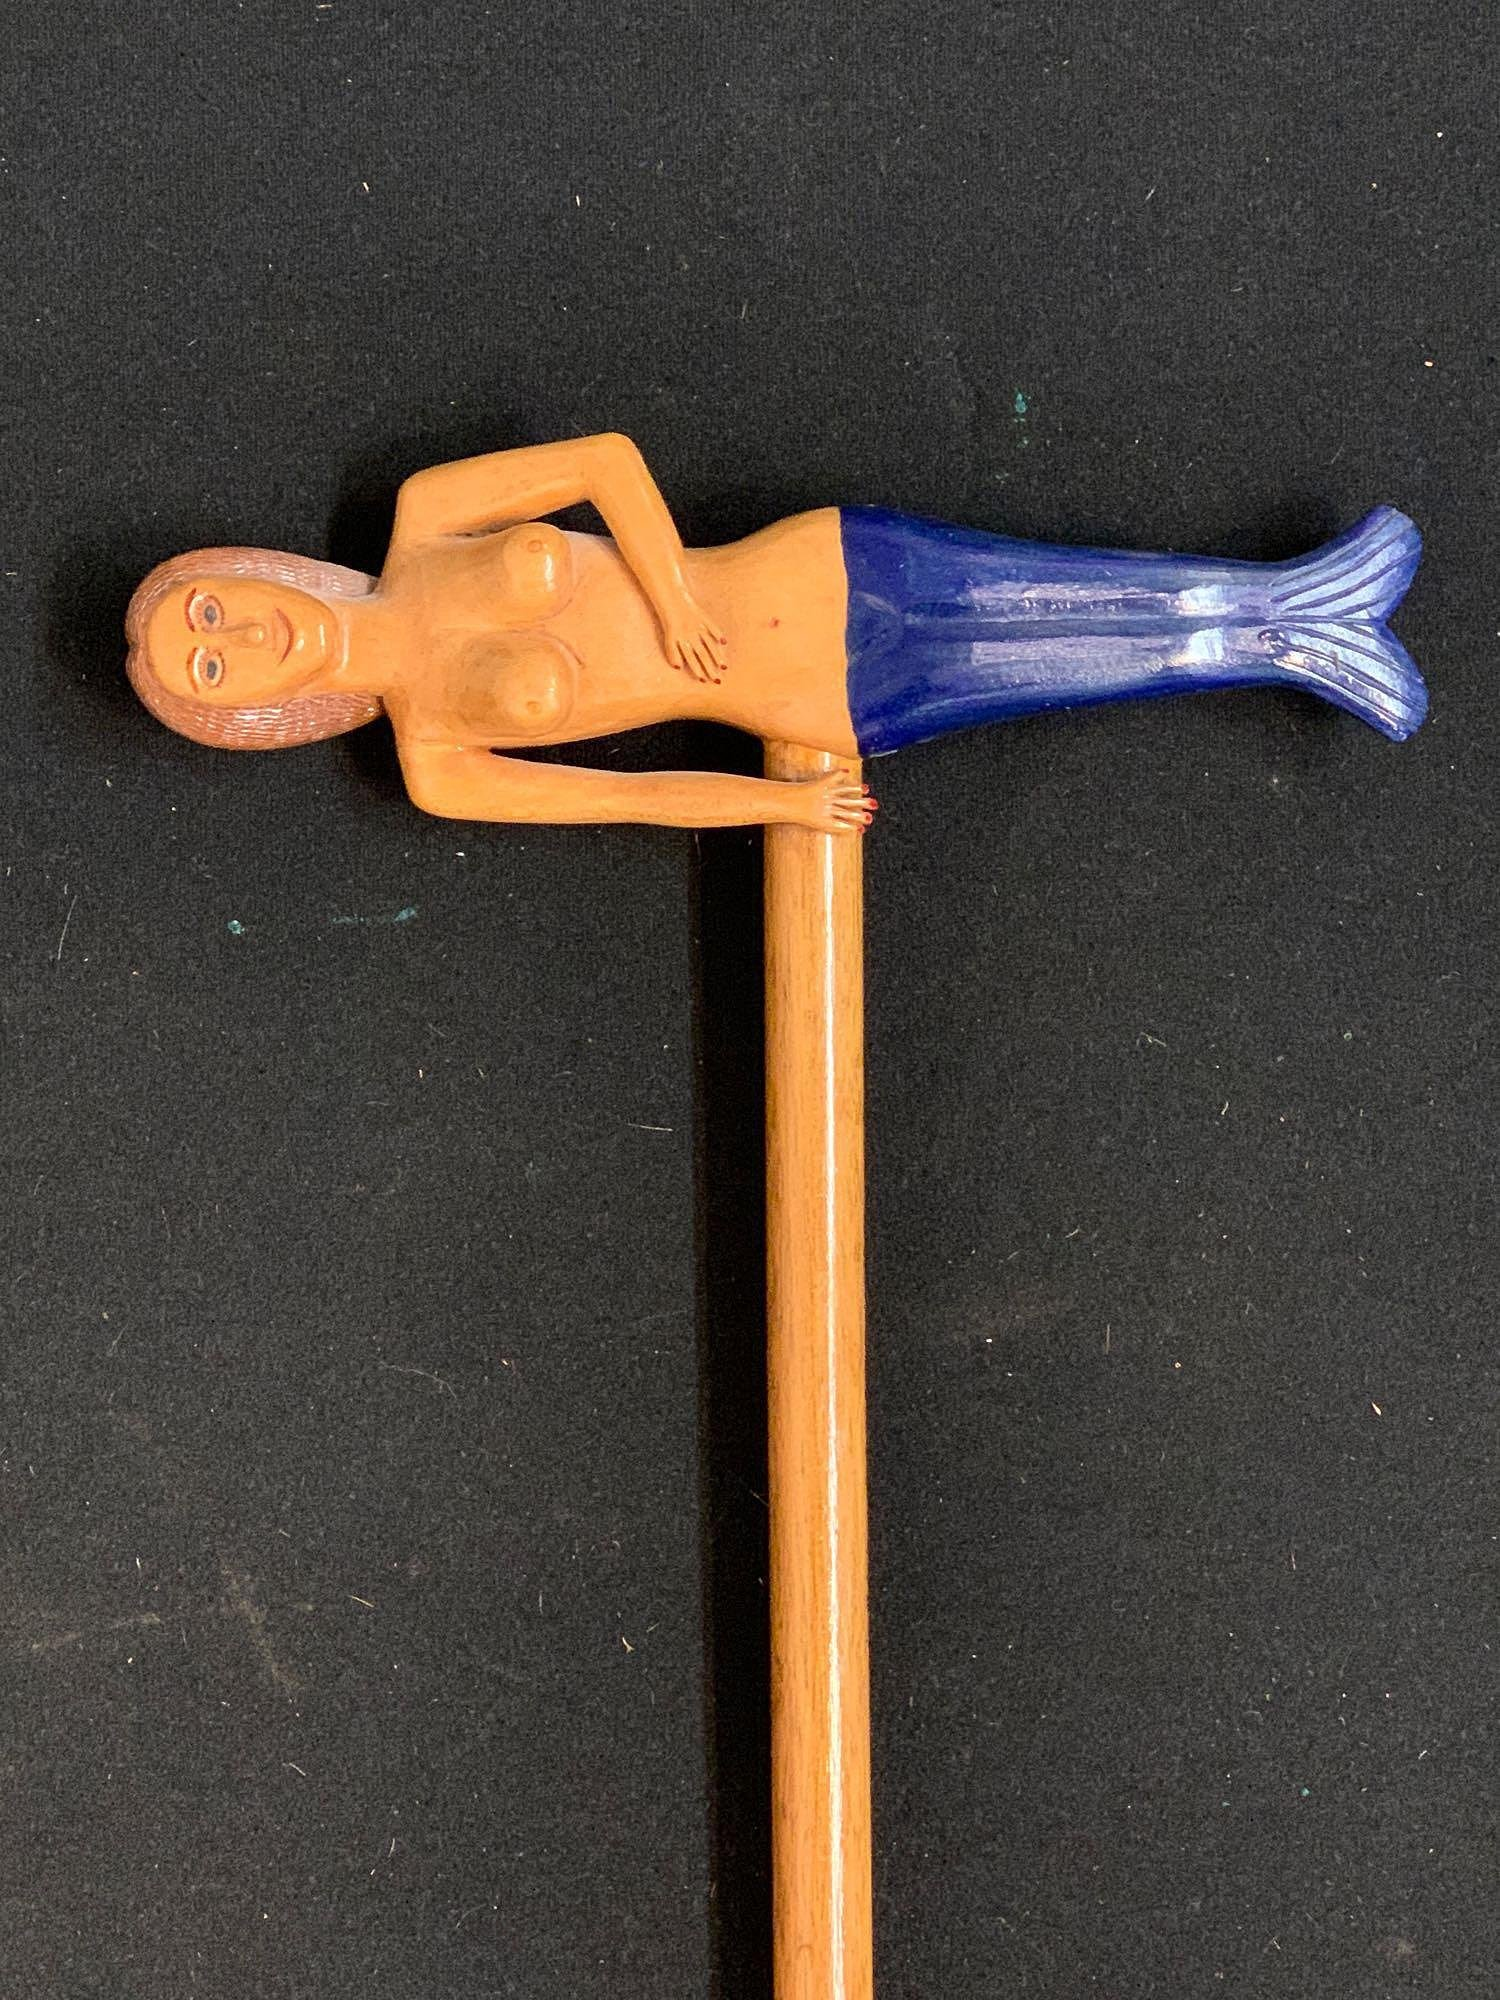 Ralph Buckwalter Mermaid Walking Cane